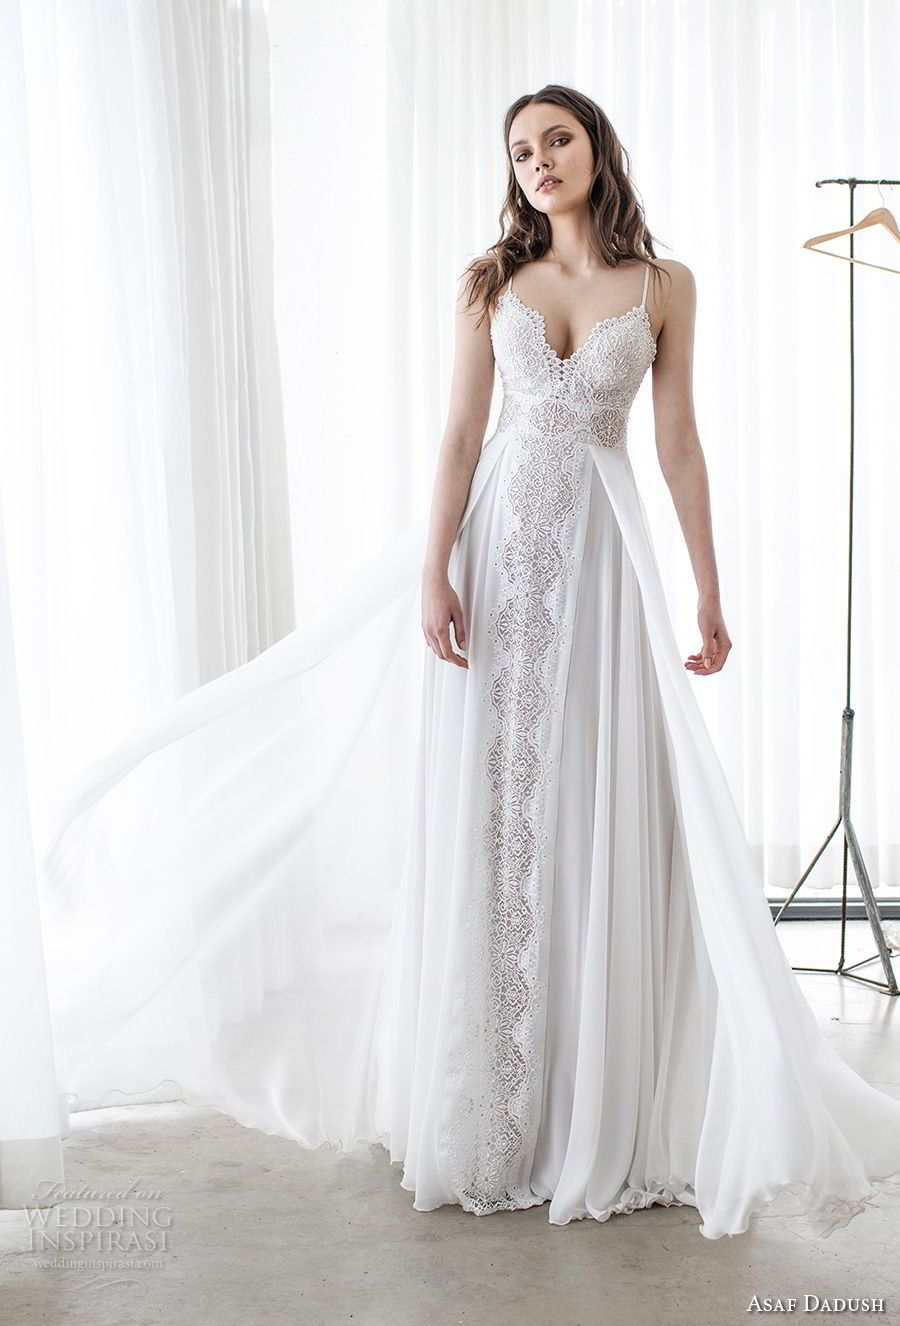 Asaf dadush wedding dresses bodice neckline and romantic